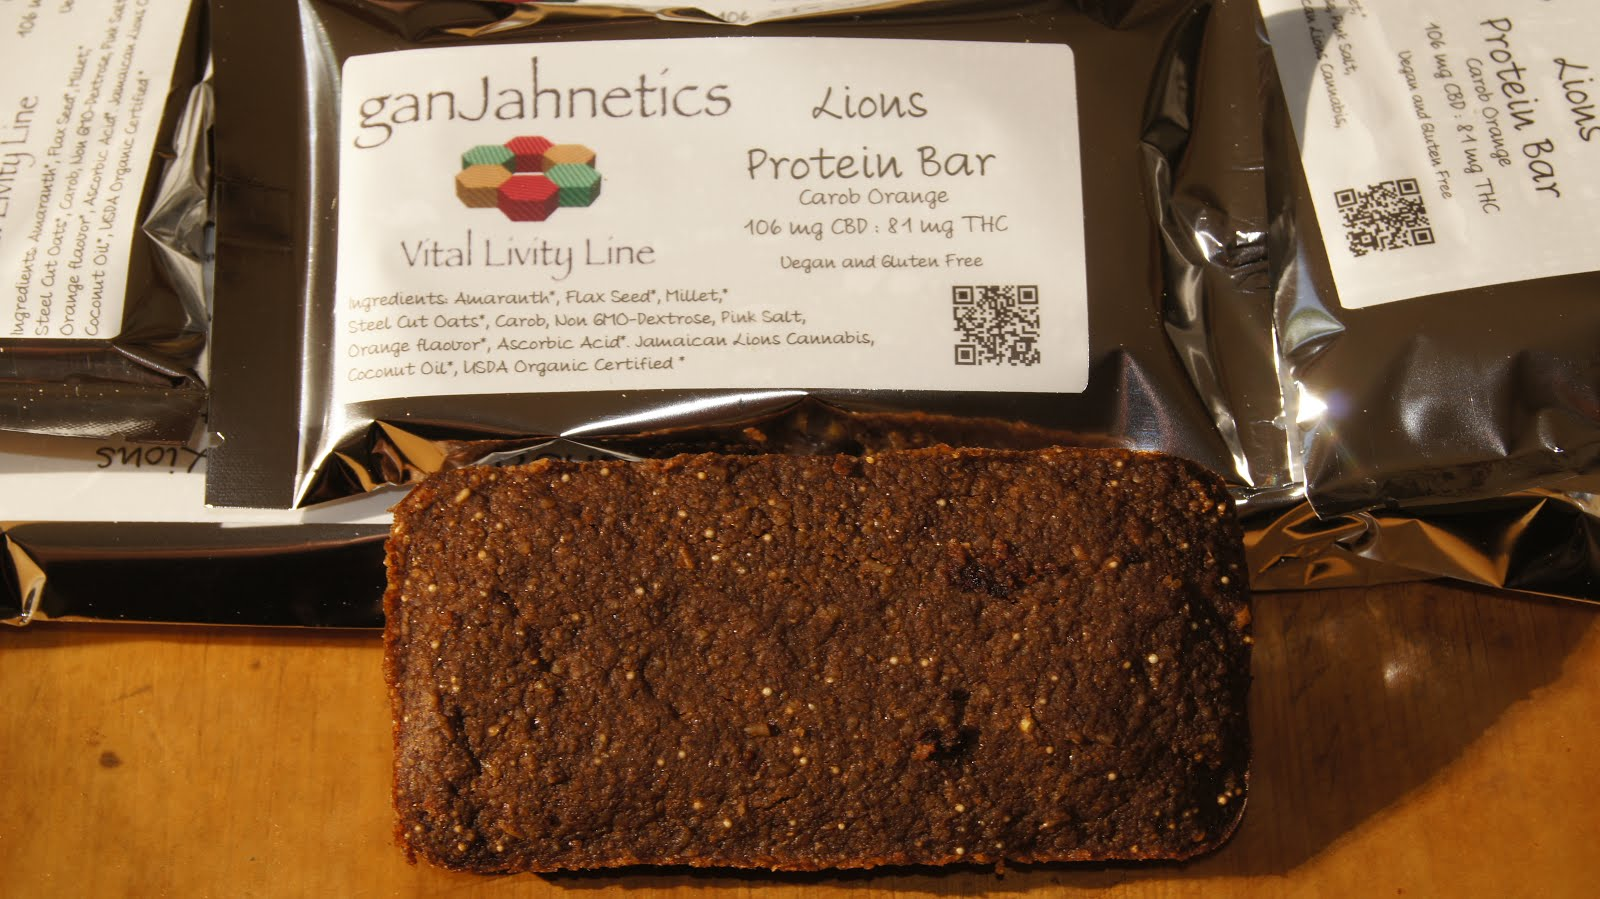 Lions Protein Bars: Vegan, Gluten Free, and full of Love